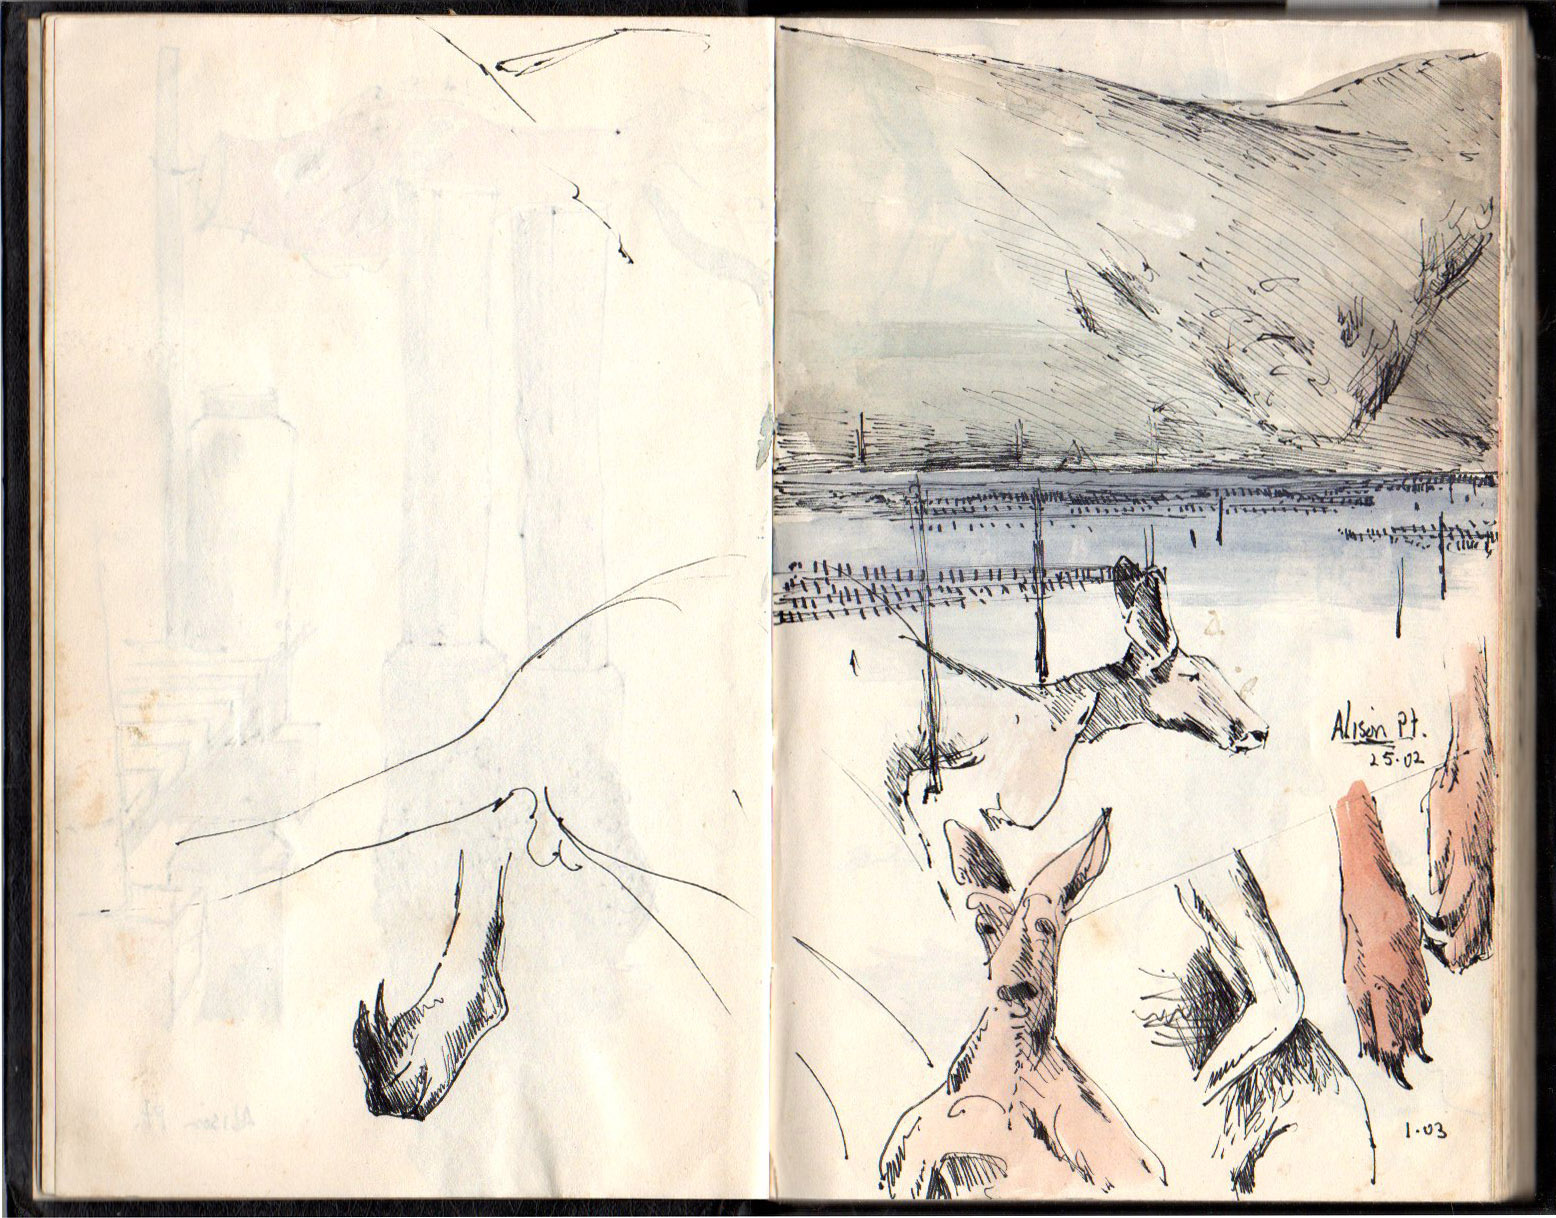 Drawing Book 6 1988  Kangaroos in Peats Crater and Alison Pt